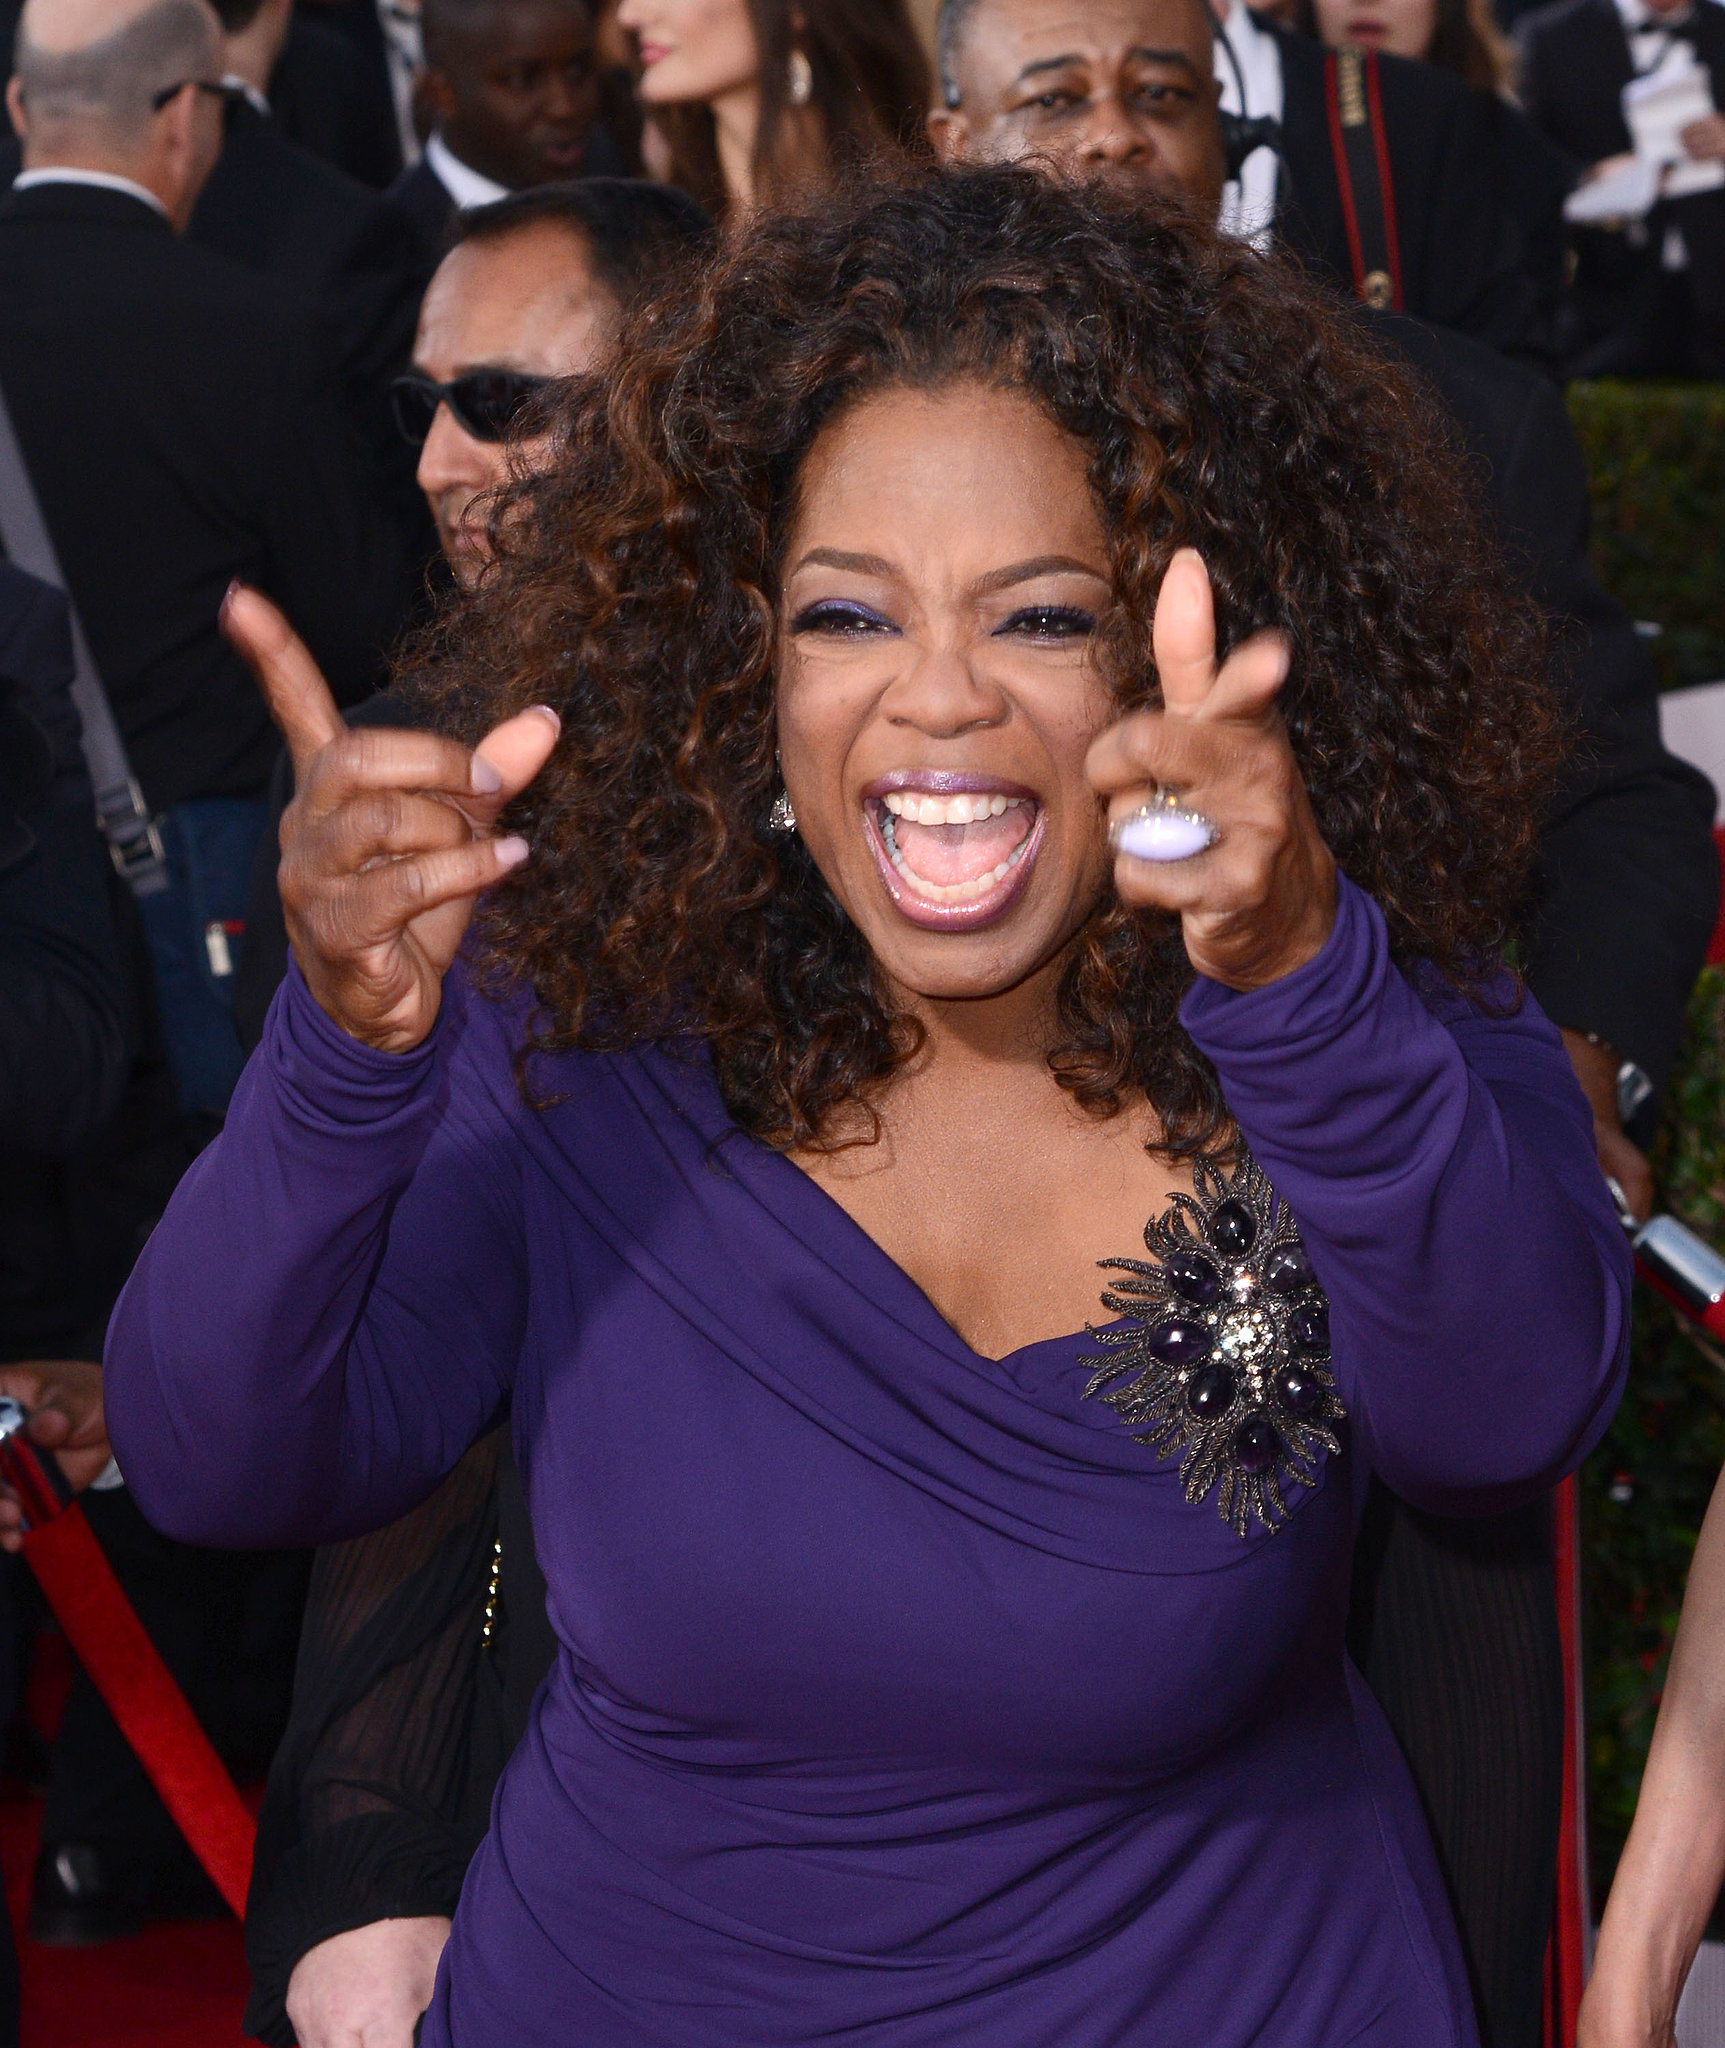 Oprah was all smiles and pointer fingers as she arrived on the SAG Awards red carpet in 2014.